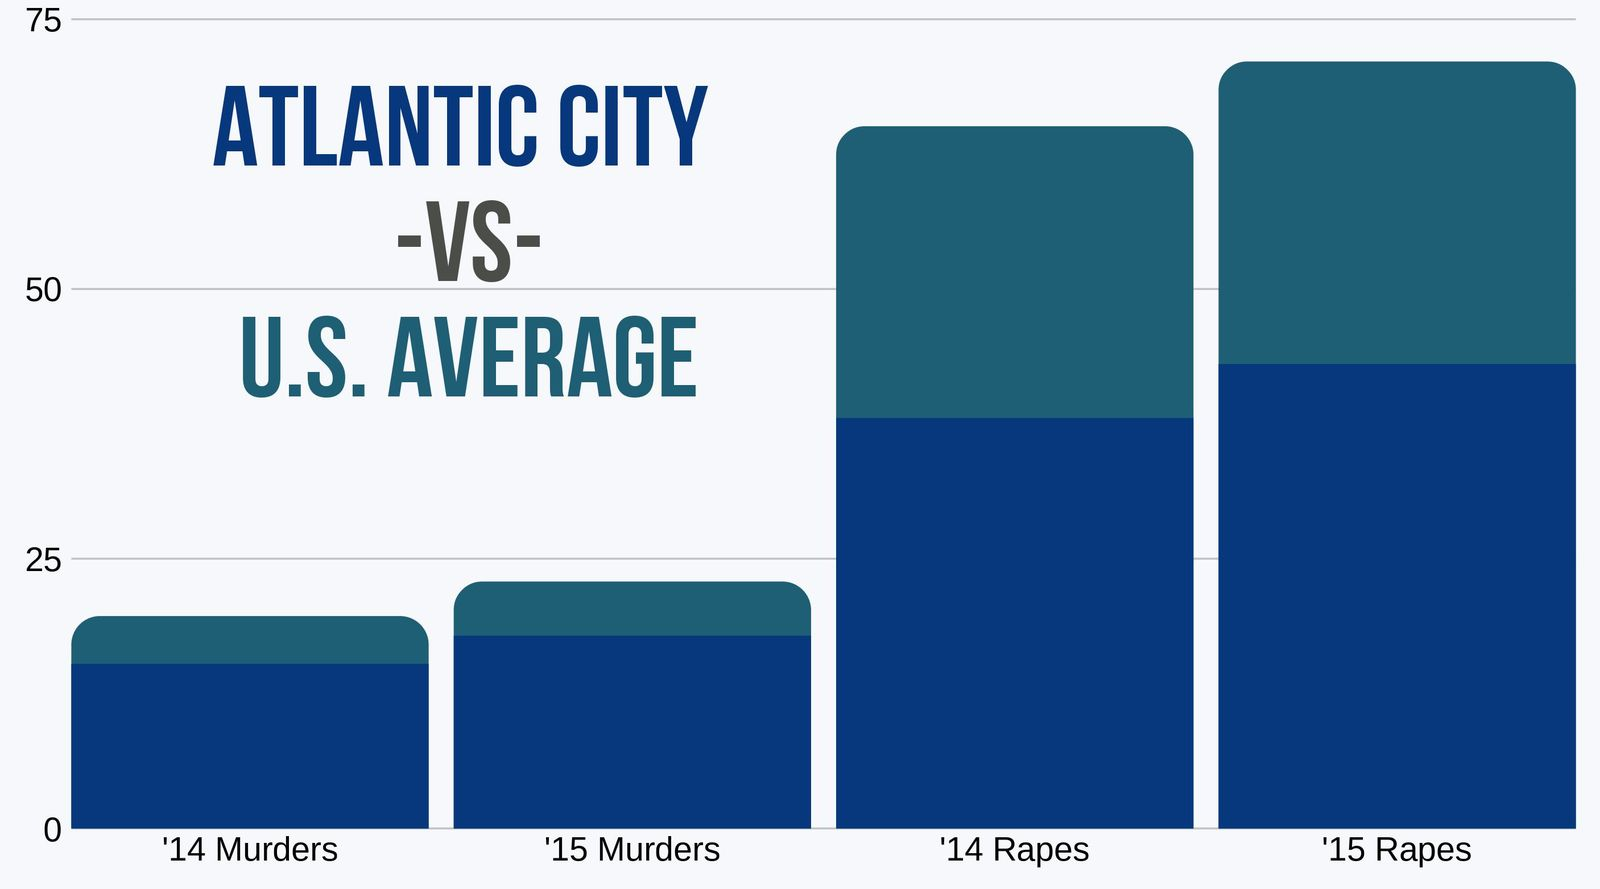 Rapes and Murders in Atlantic City vs US Average 2014 to 2015